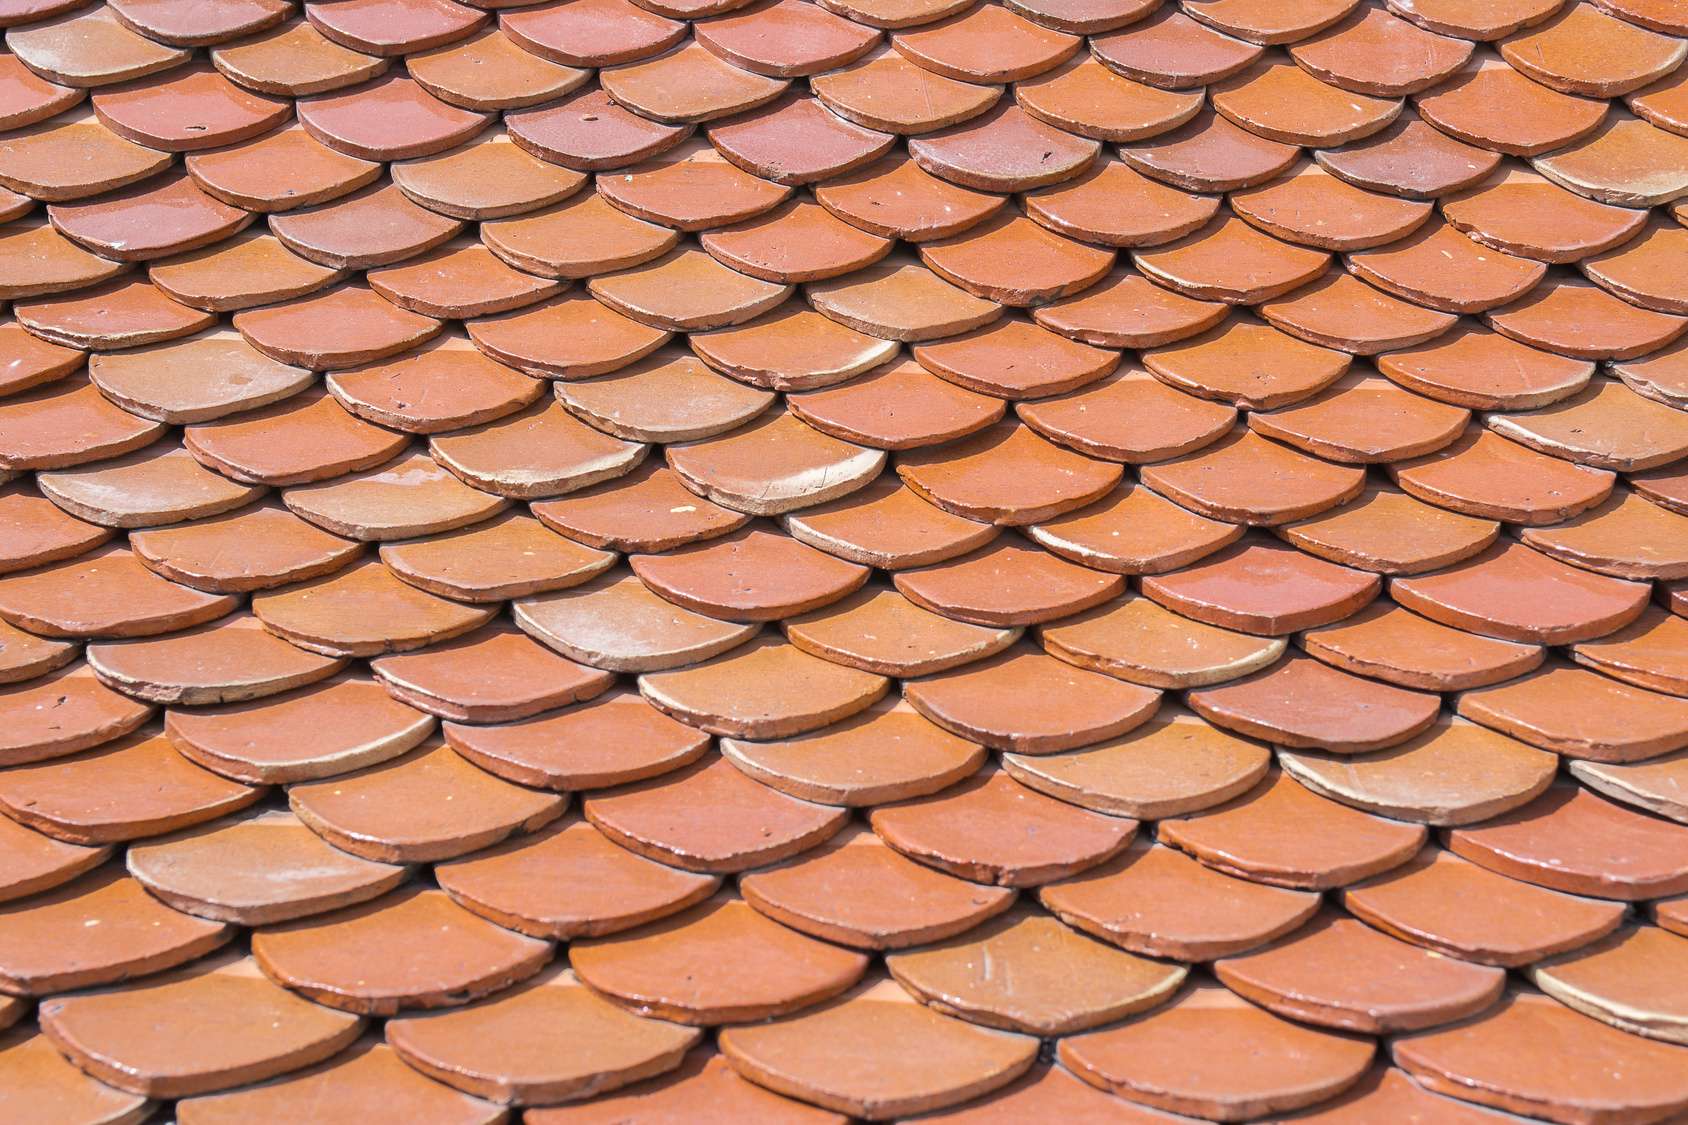 Consider An Alternative To Asphalt Shingles. Roofing Materials Like Sheet  Metal Or Clay Tiles Can Add A Unique Look To Your Home While Still  Improving Your ...